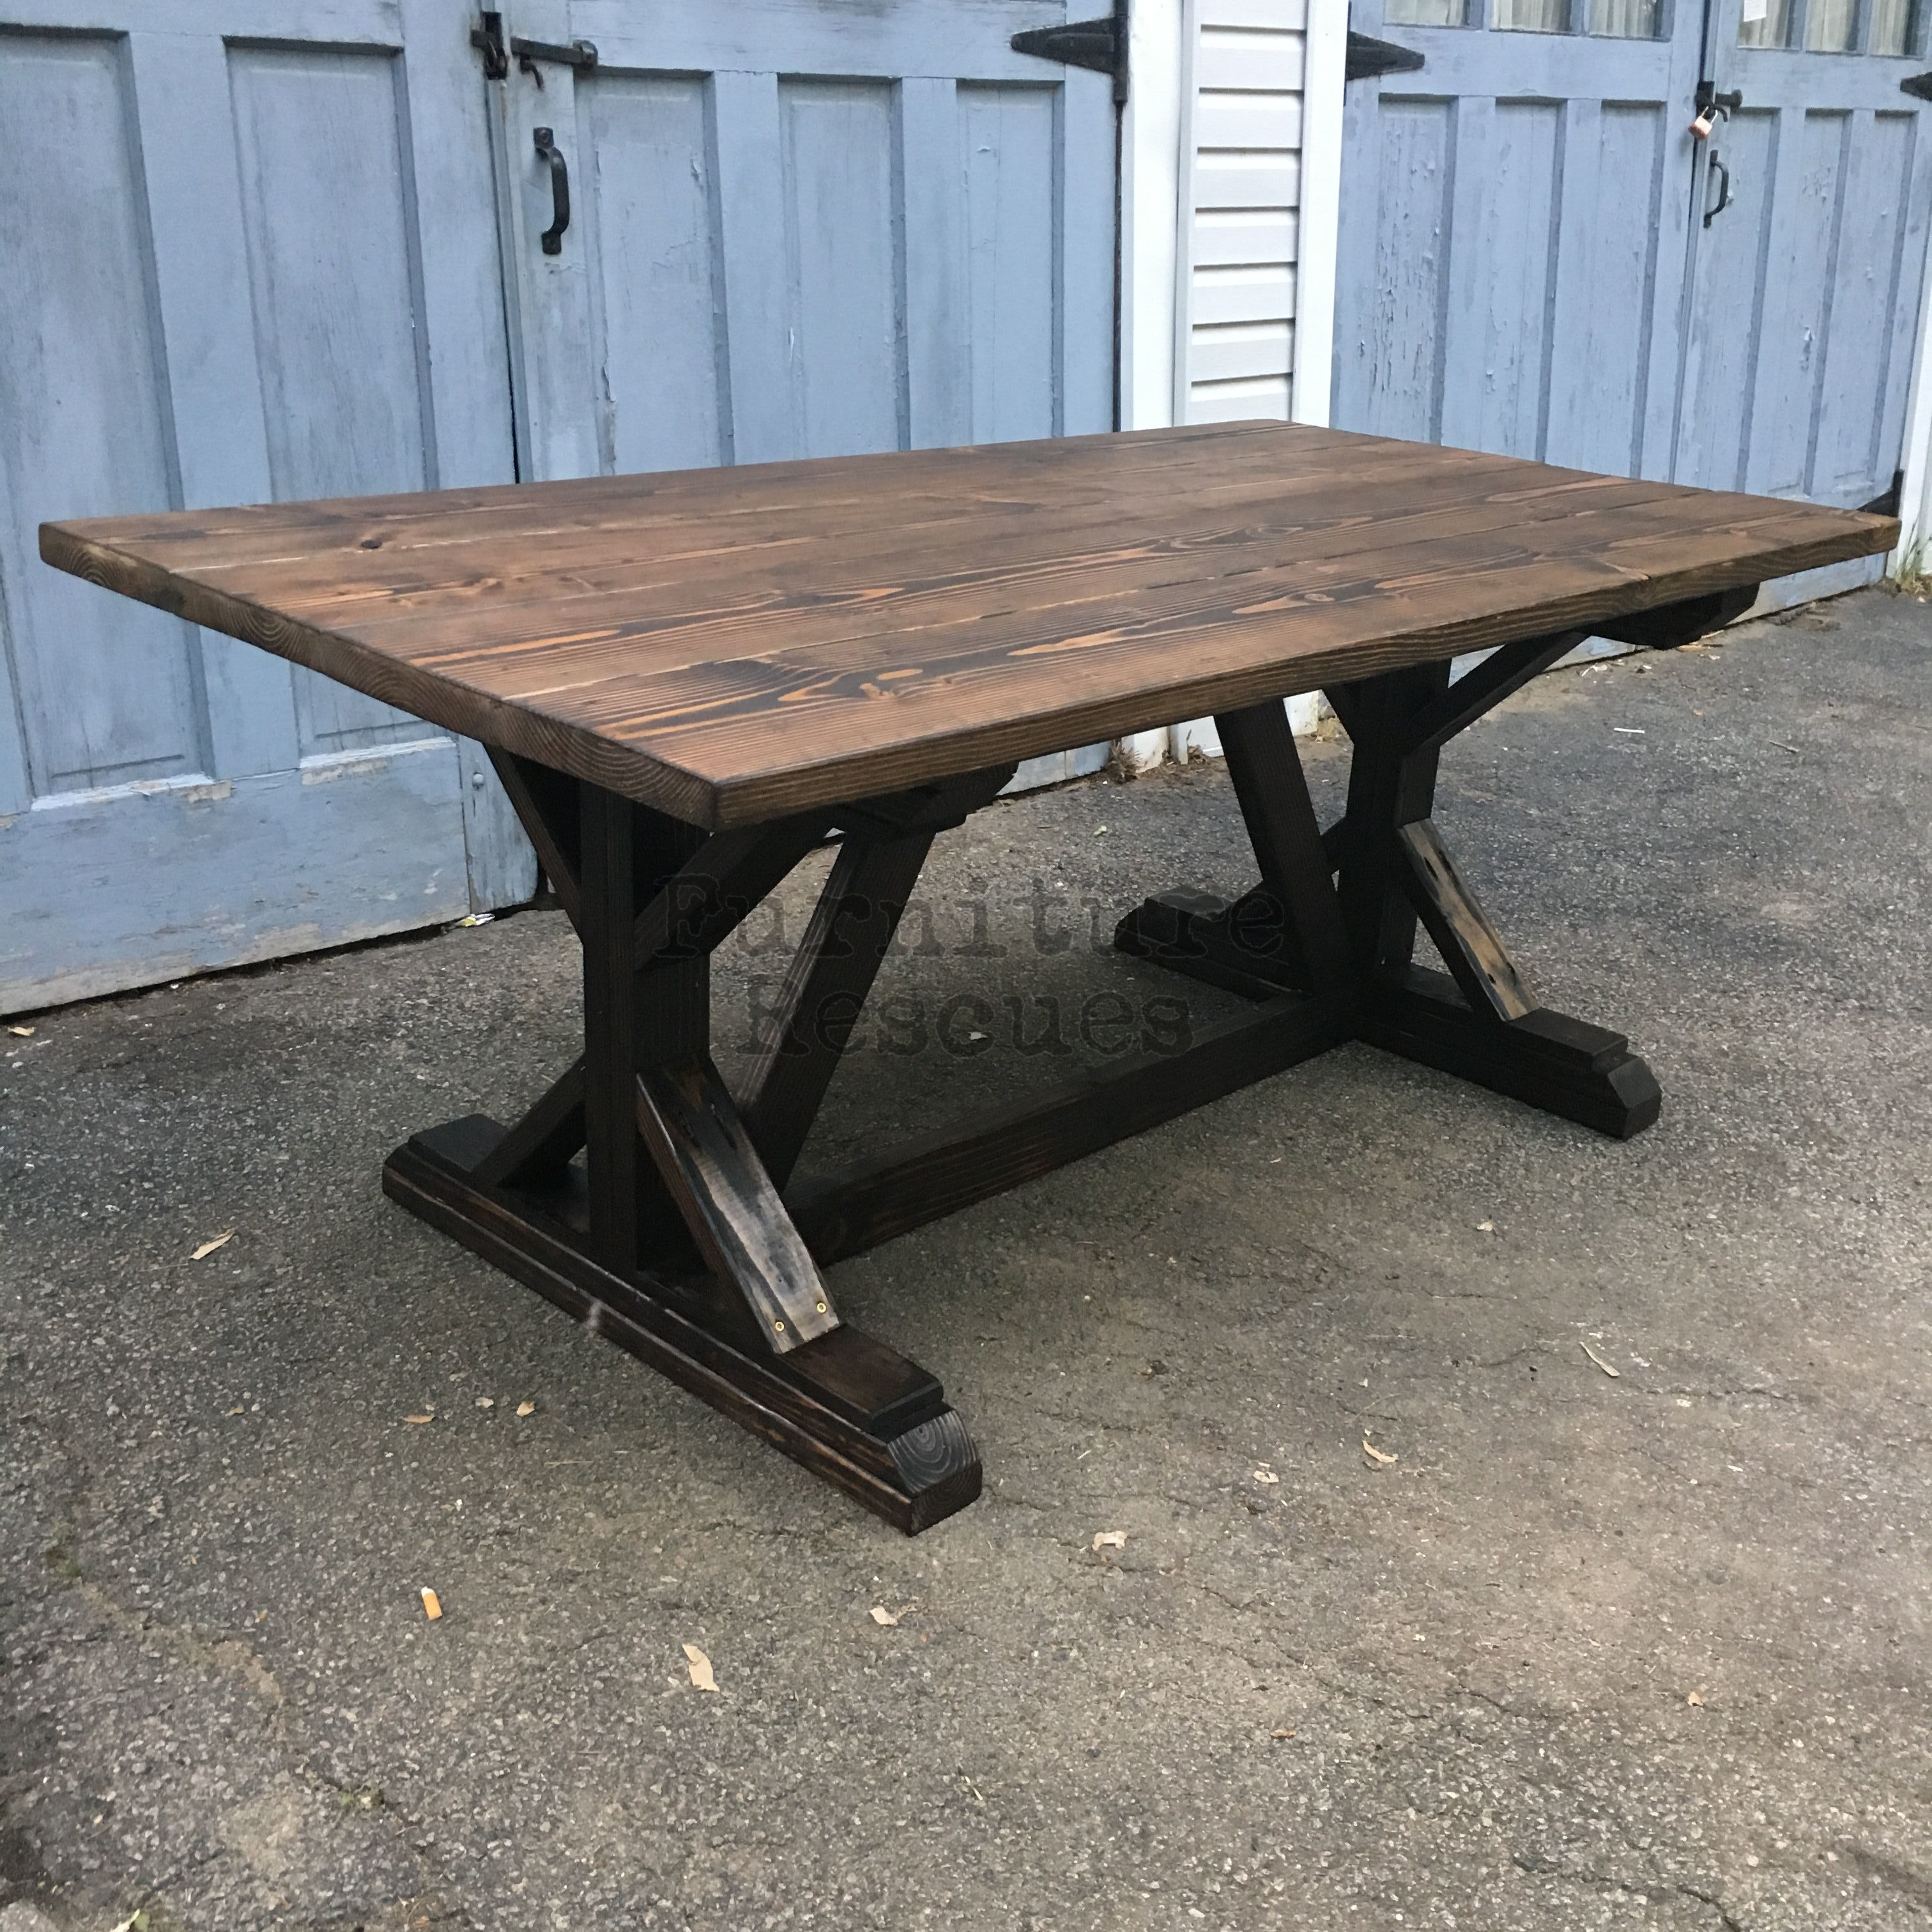 Farm style rustic dining table furniture rescues for Dining tables rustic farmhouse